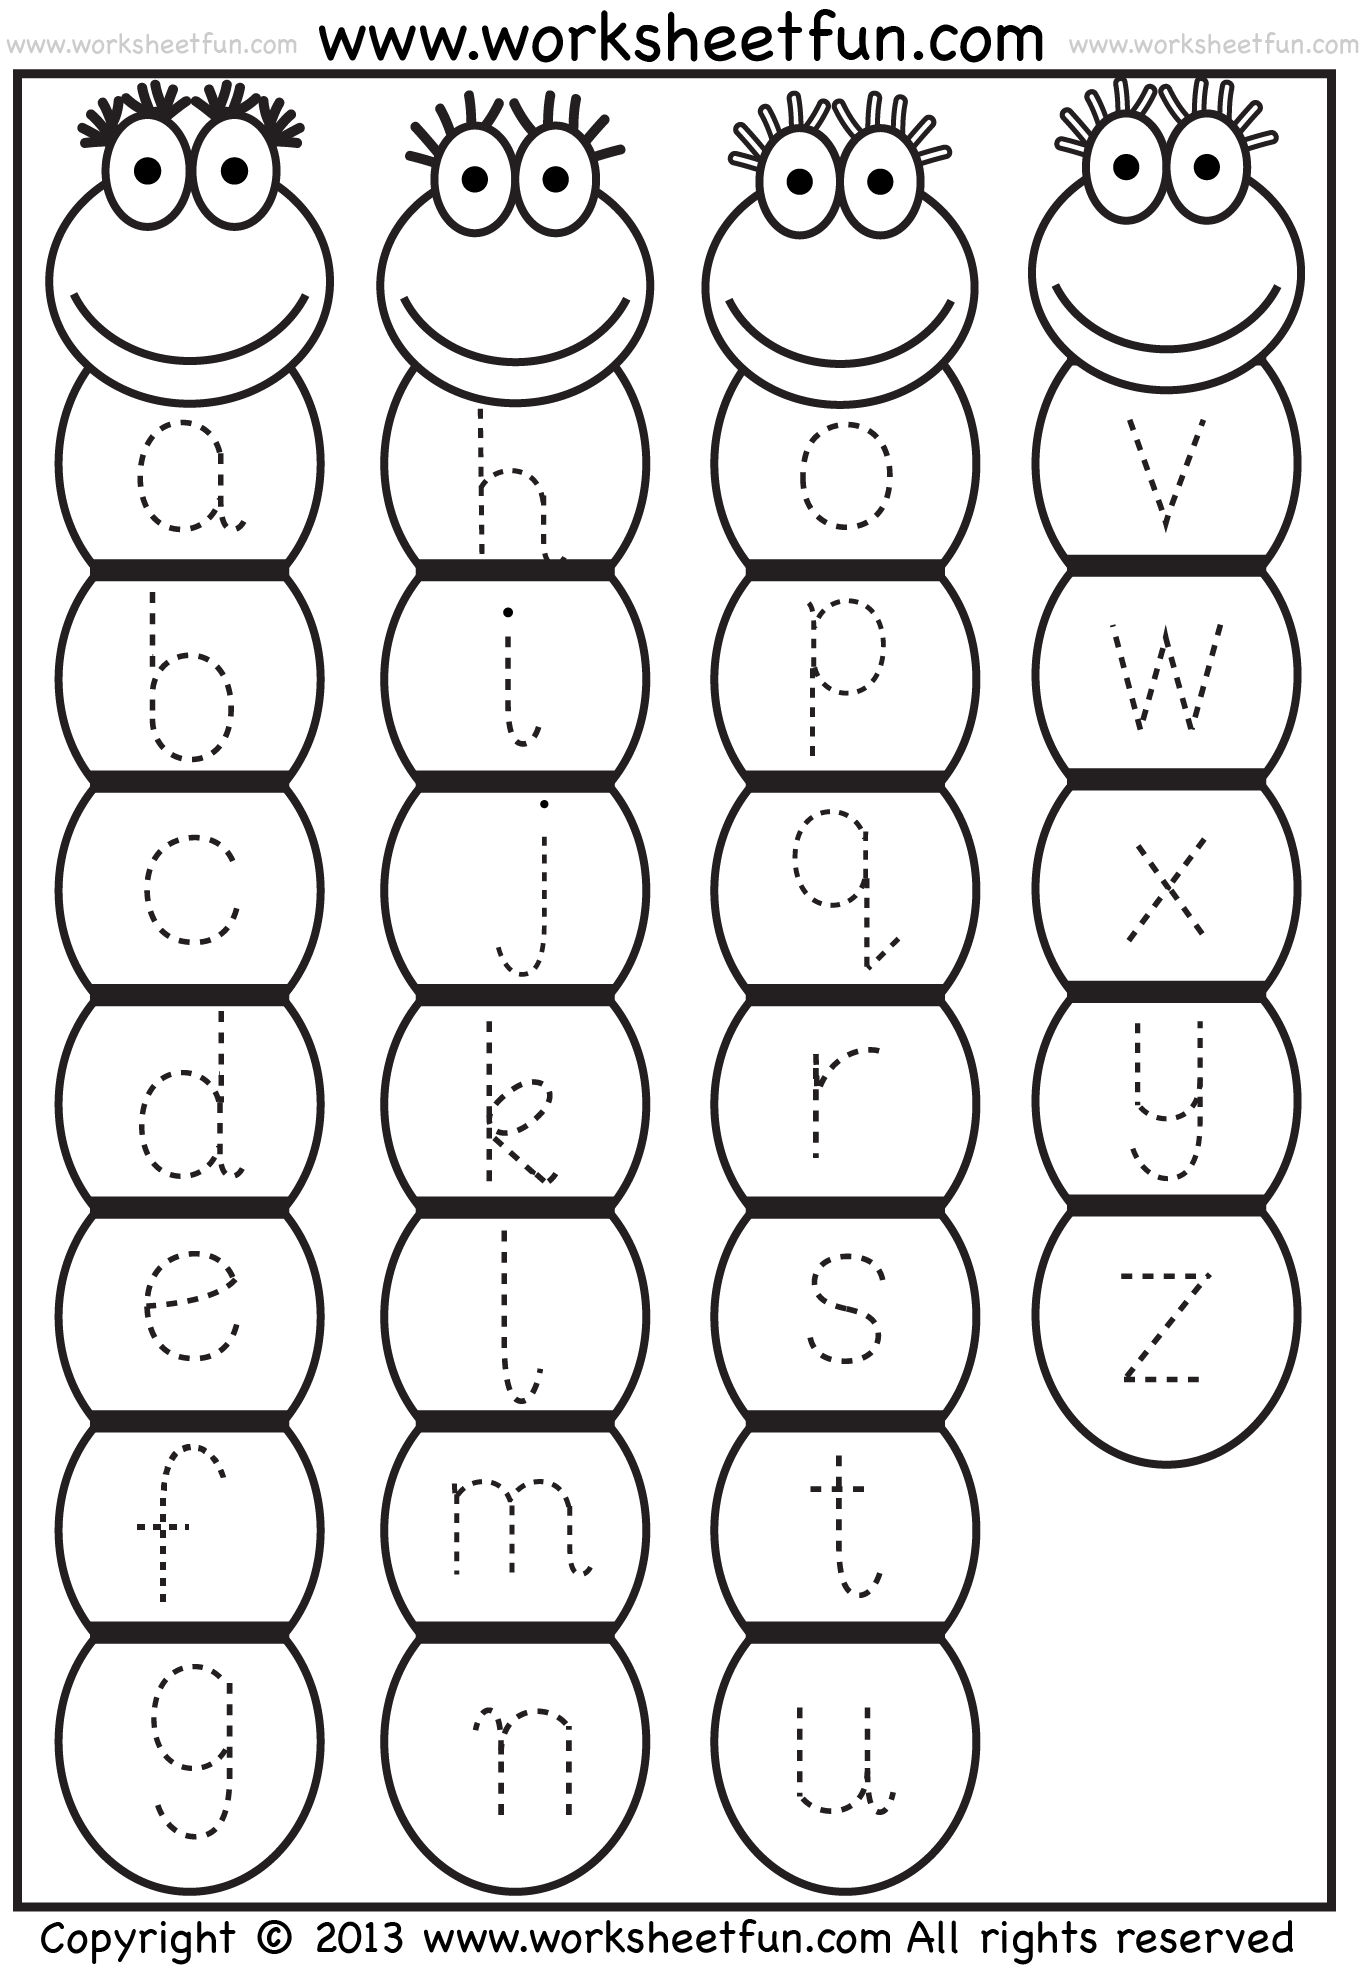 Trace Alphabet Worksheets Free Templates and Worksheets – Free Printable Kindergarten Alphabet Worksheets